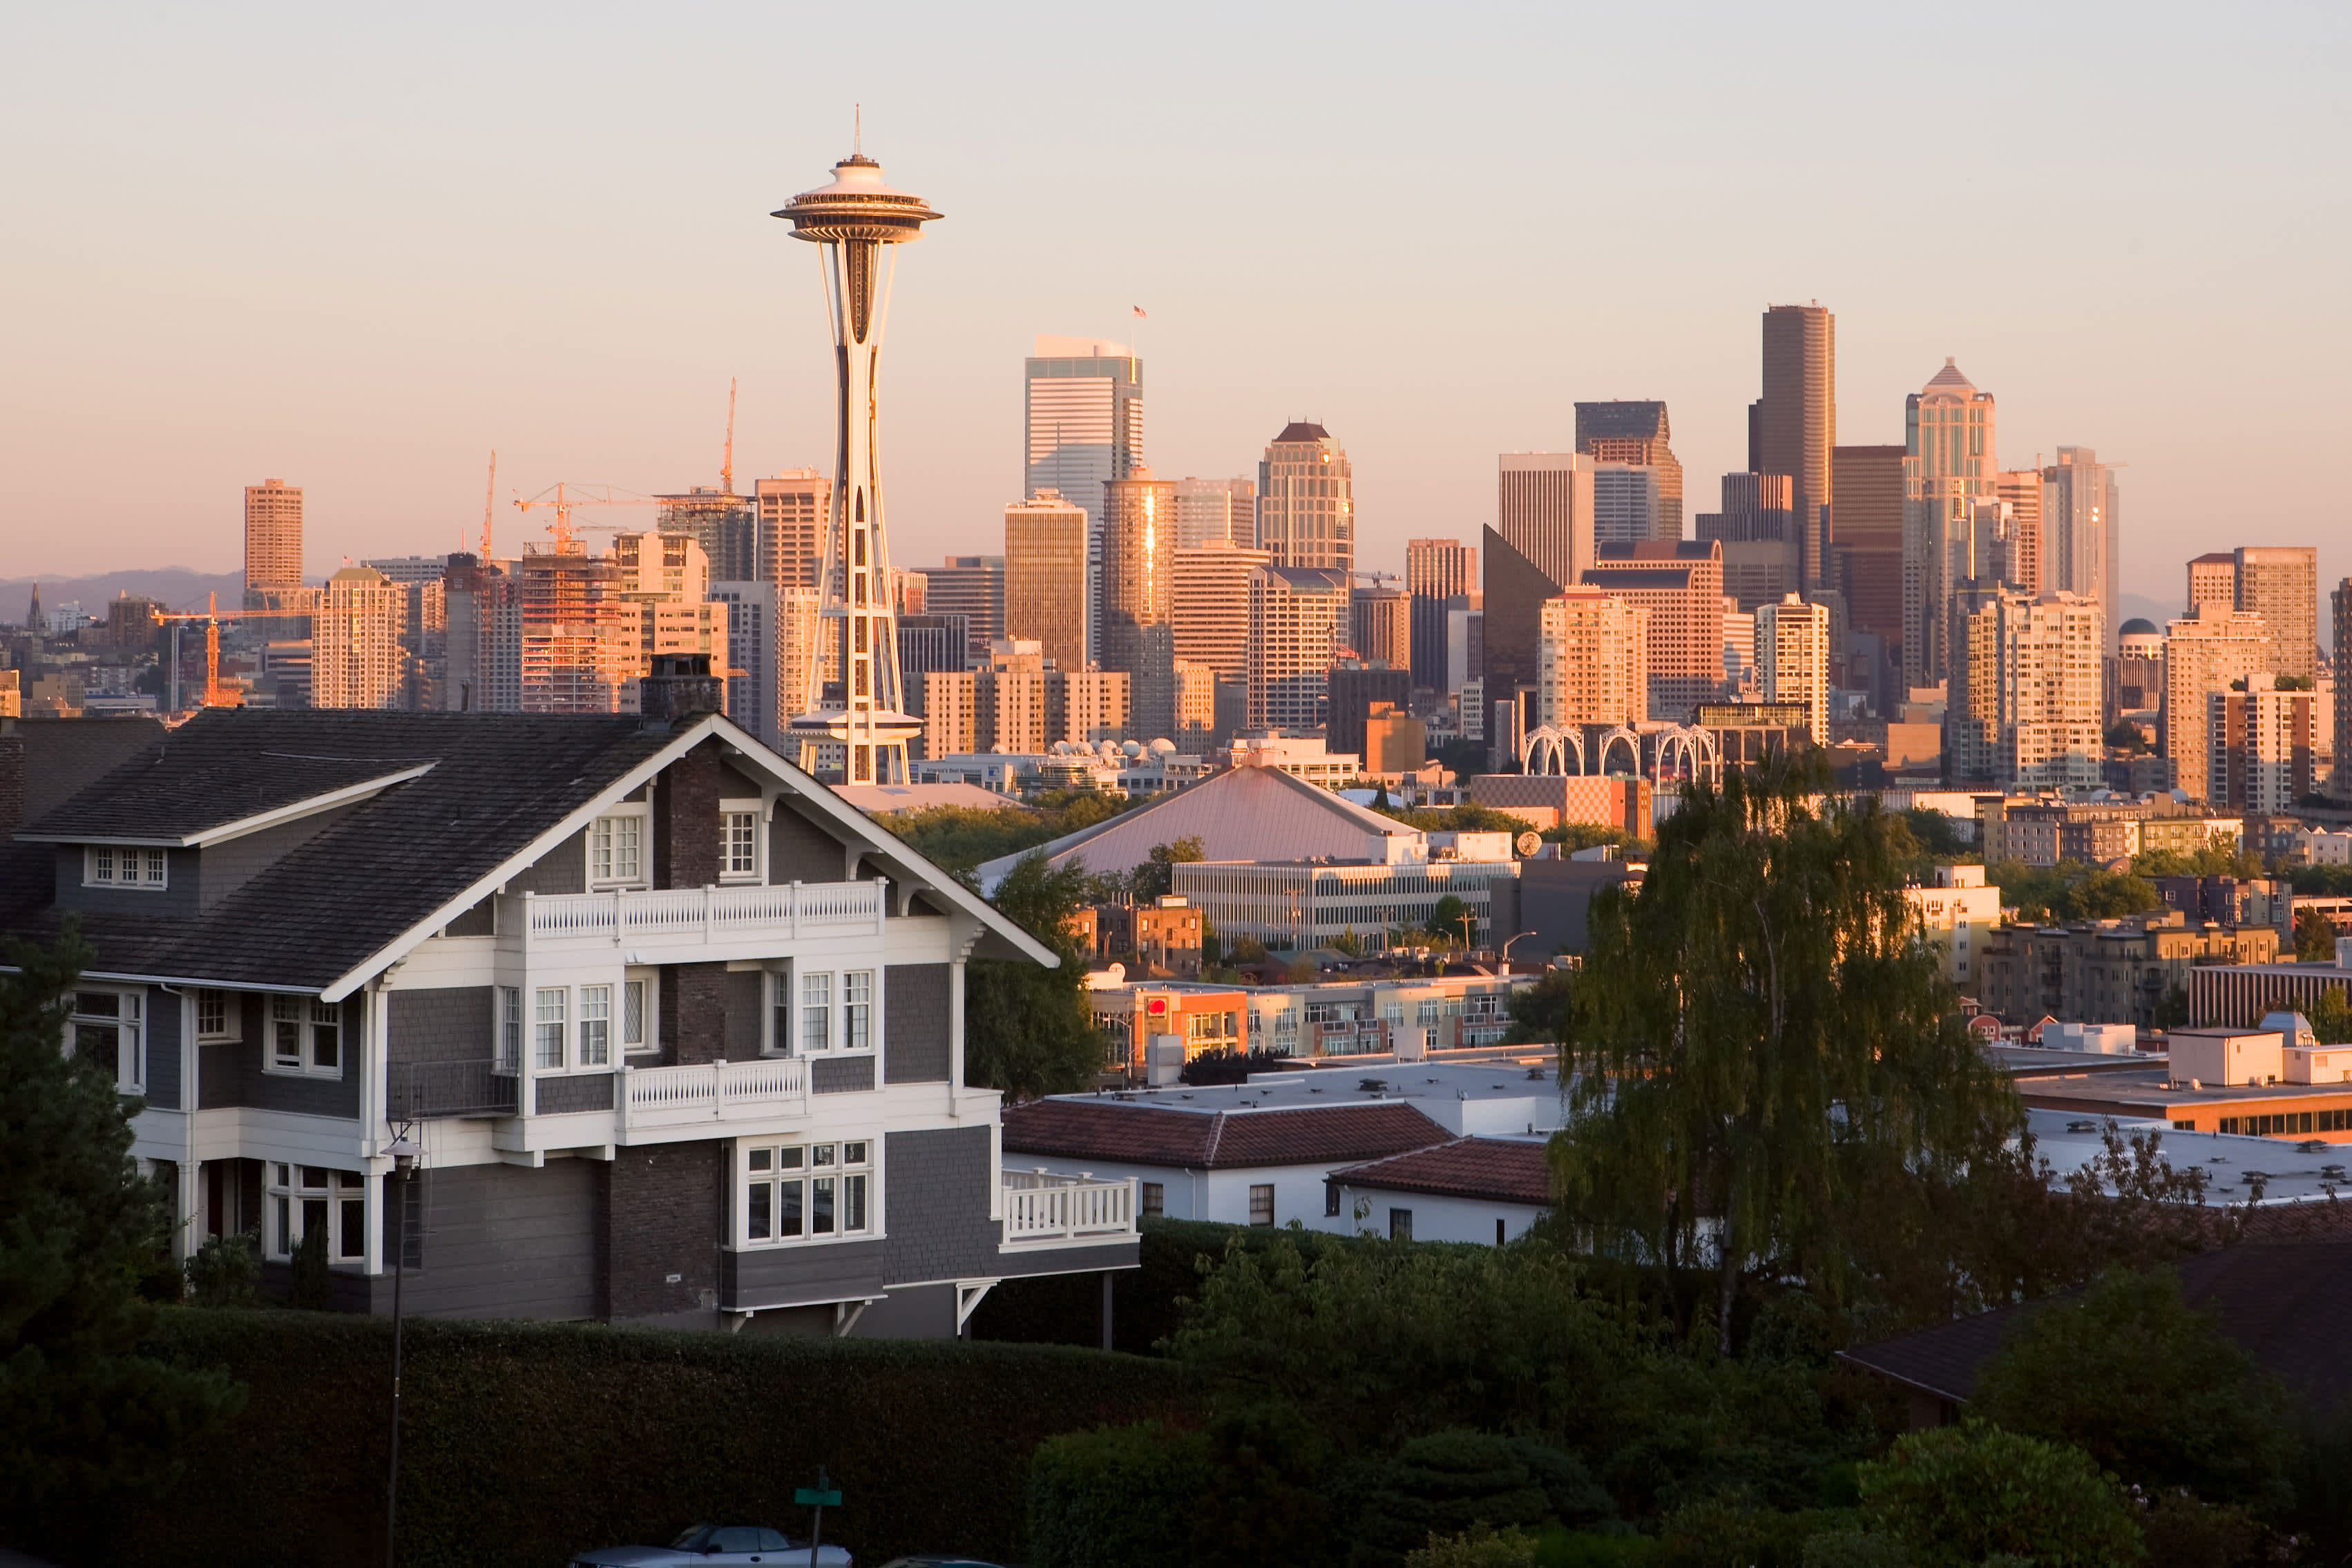 Hottest housing market in US may be headed for a crash